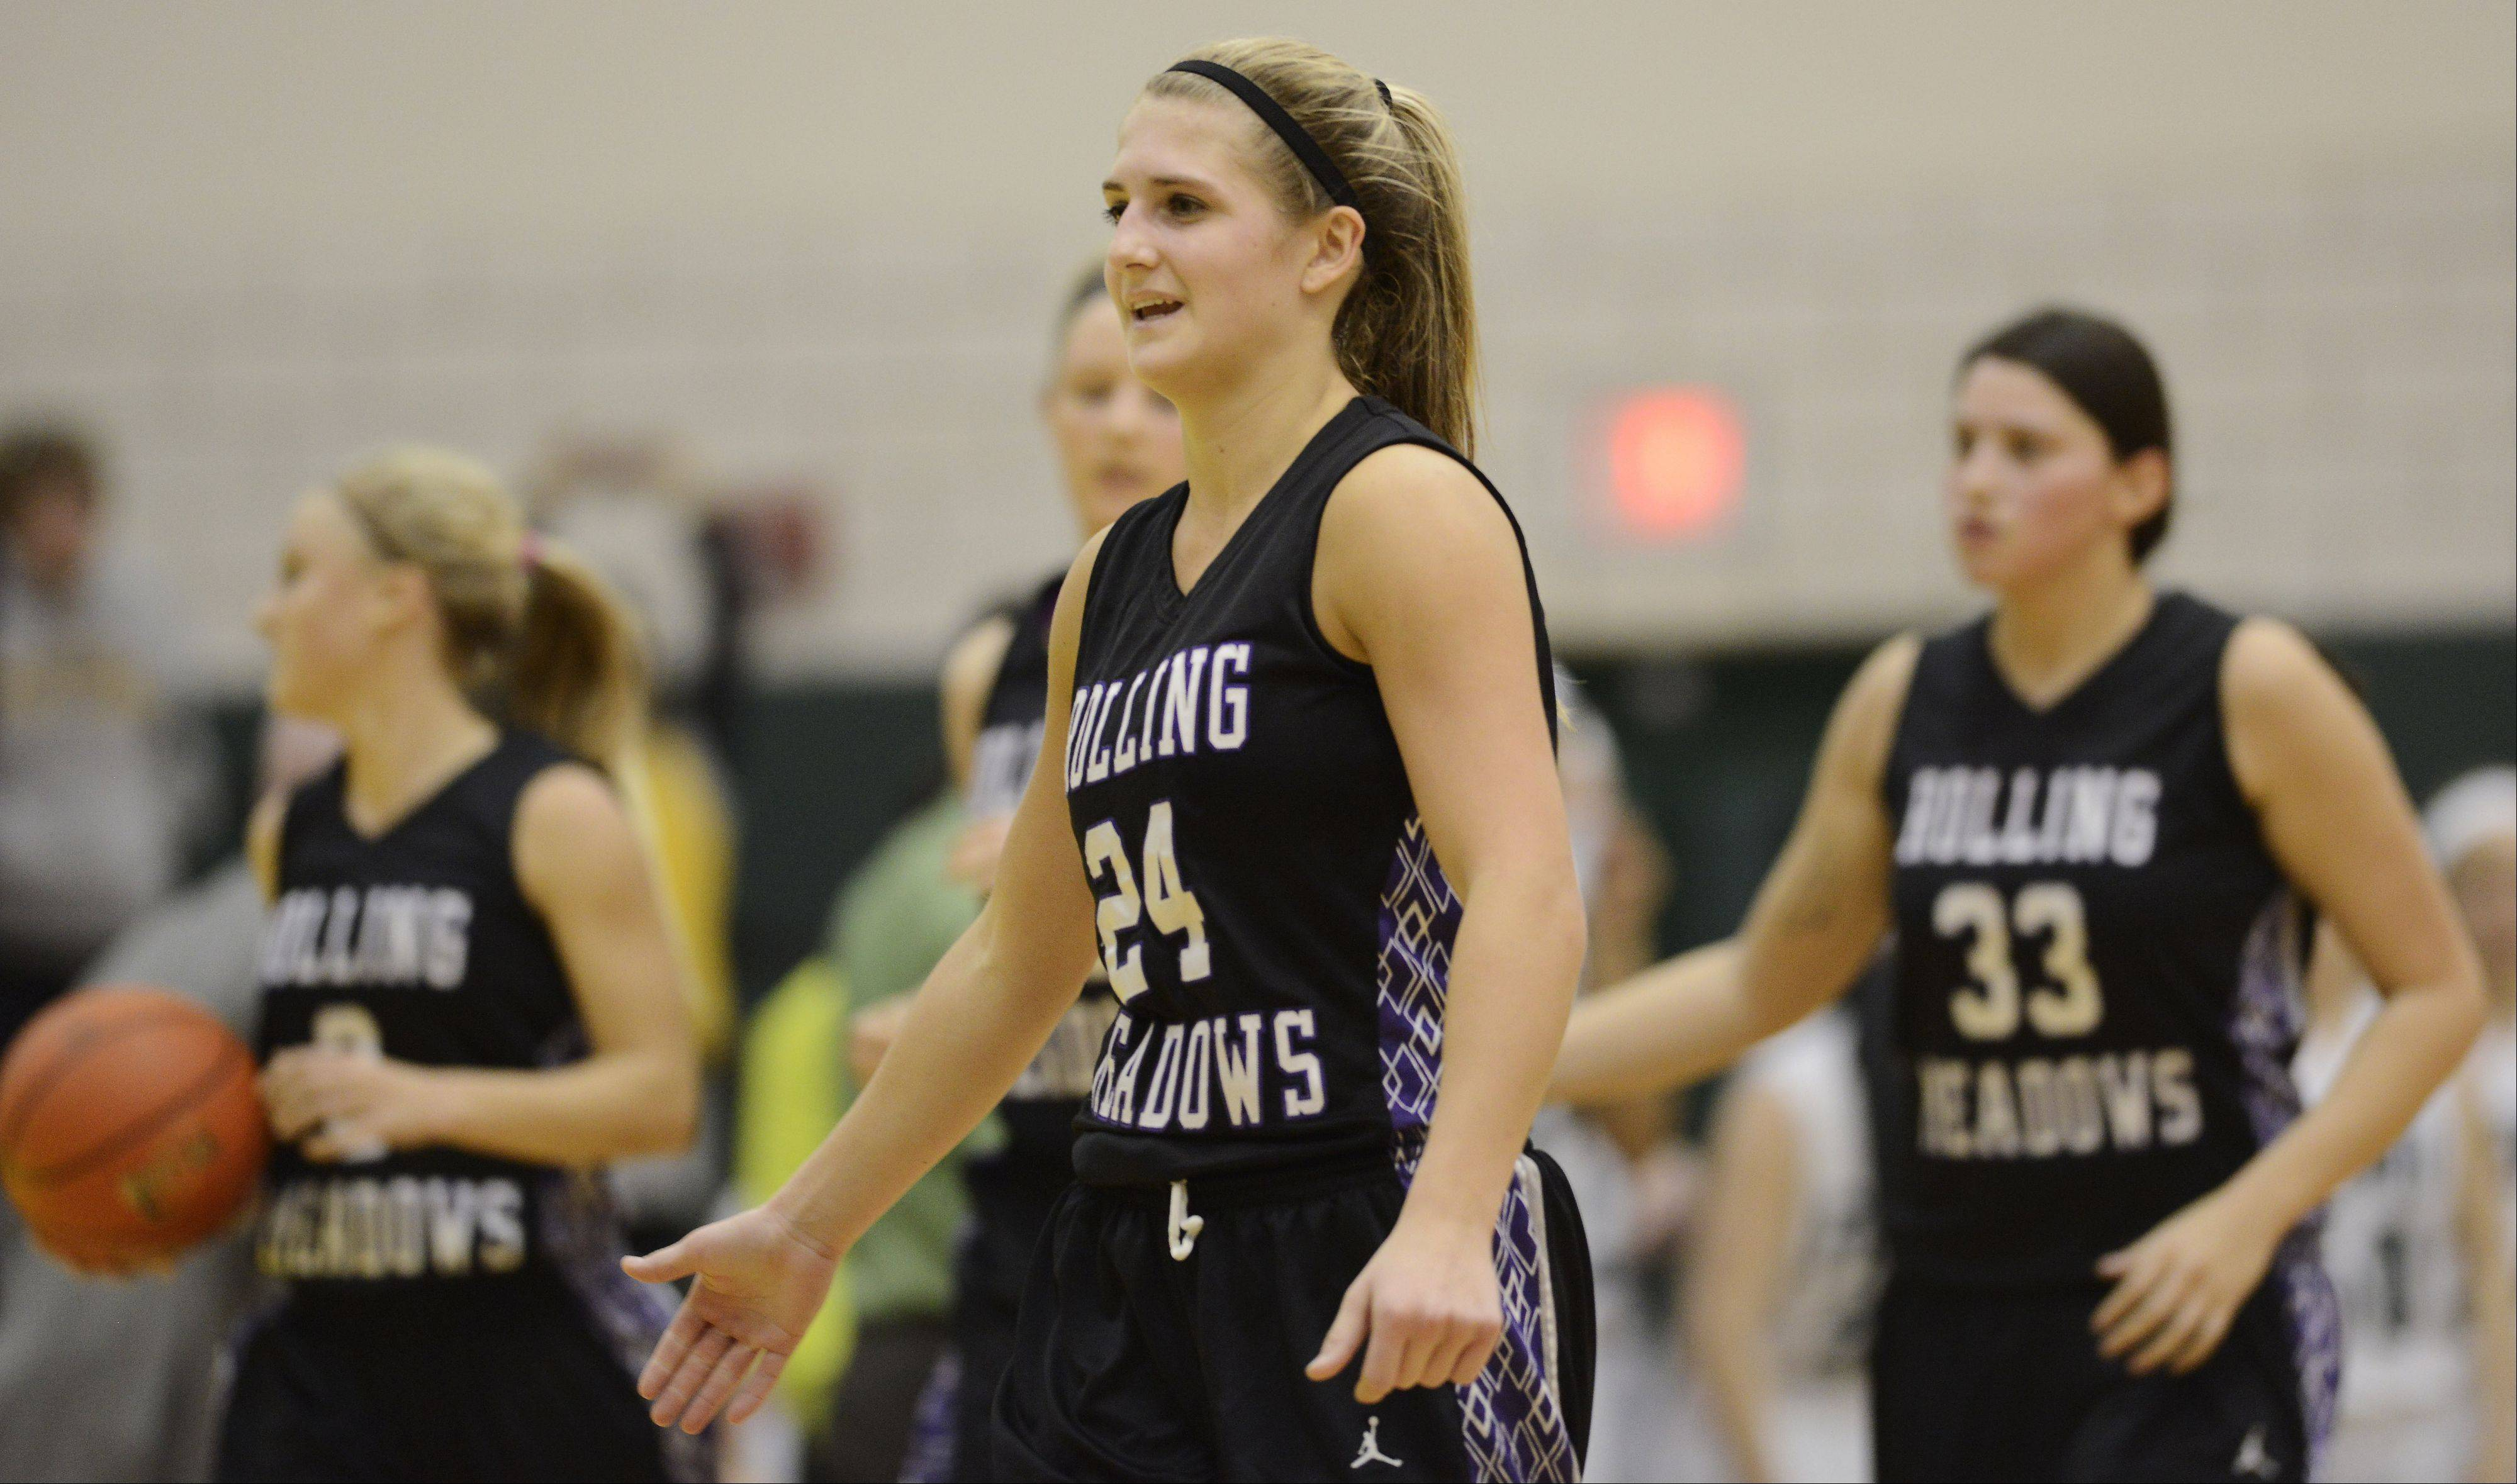 Rolling Meadows' Alexis Glasgow walks off the court with her teammates after a close victory over Fremd.